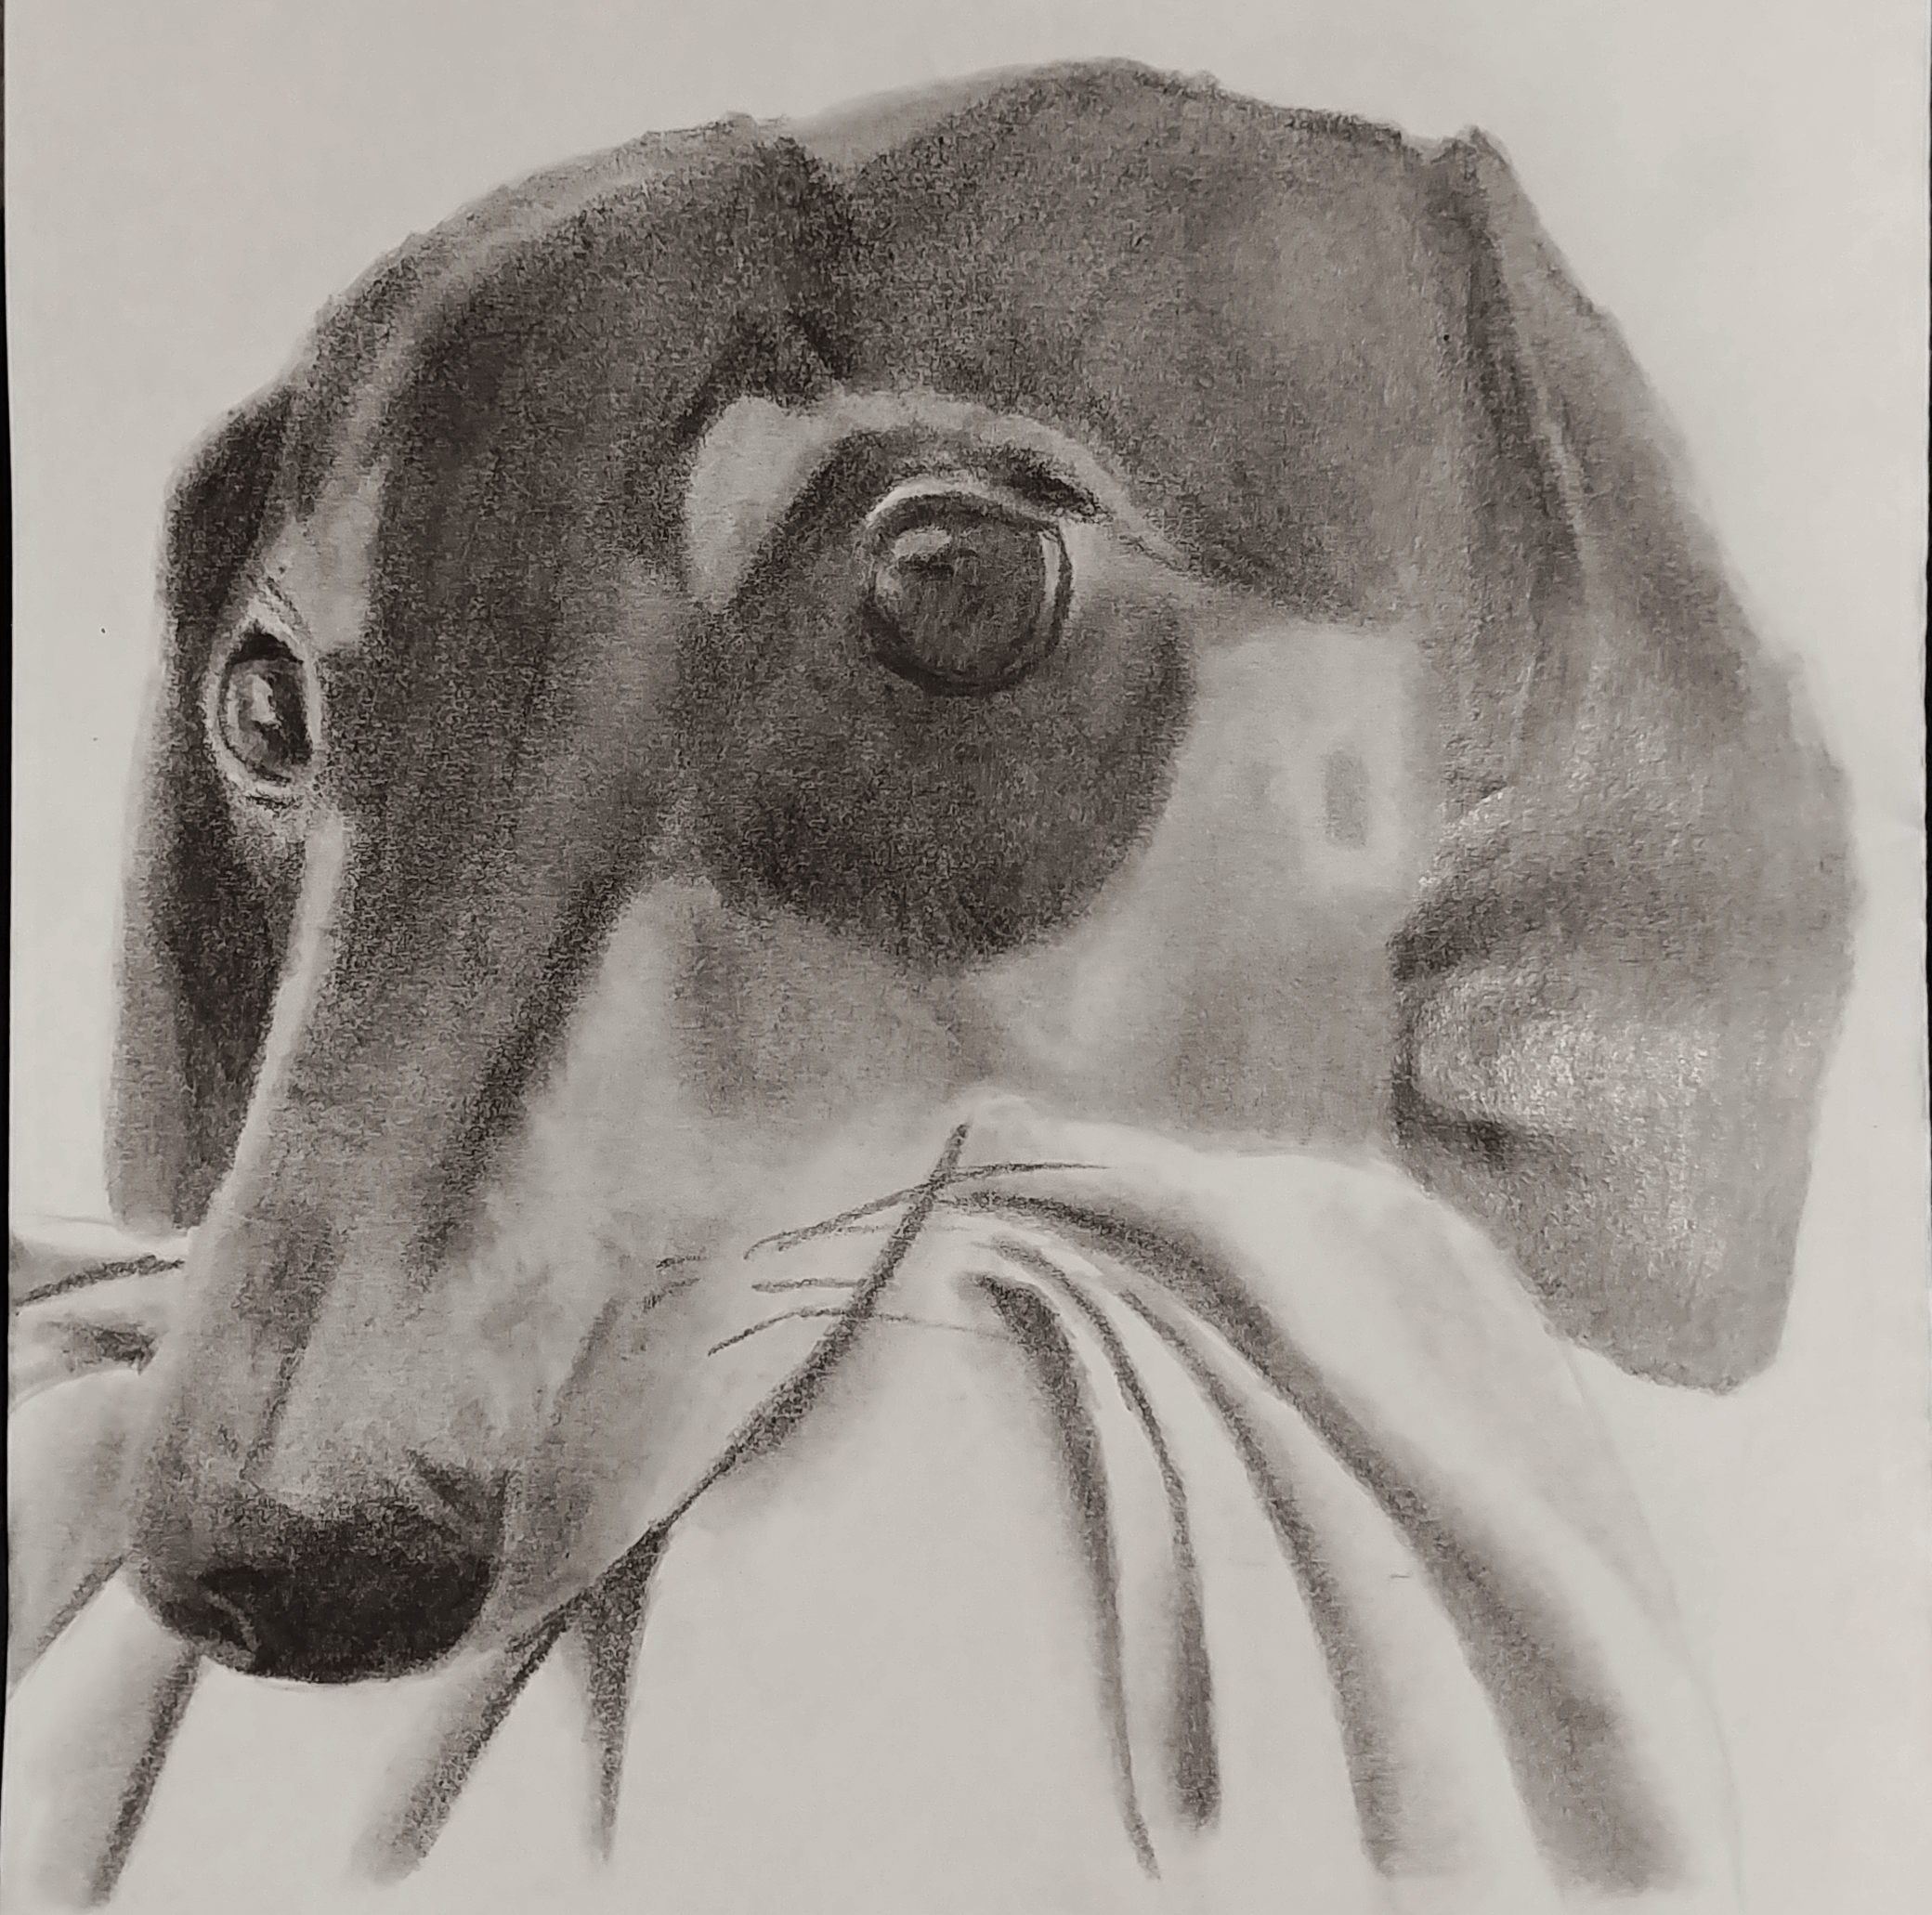 A pencil drawing of Khiron, my puppy, after he stole a blanket and refused to let it go.